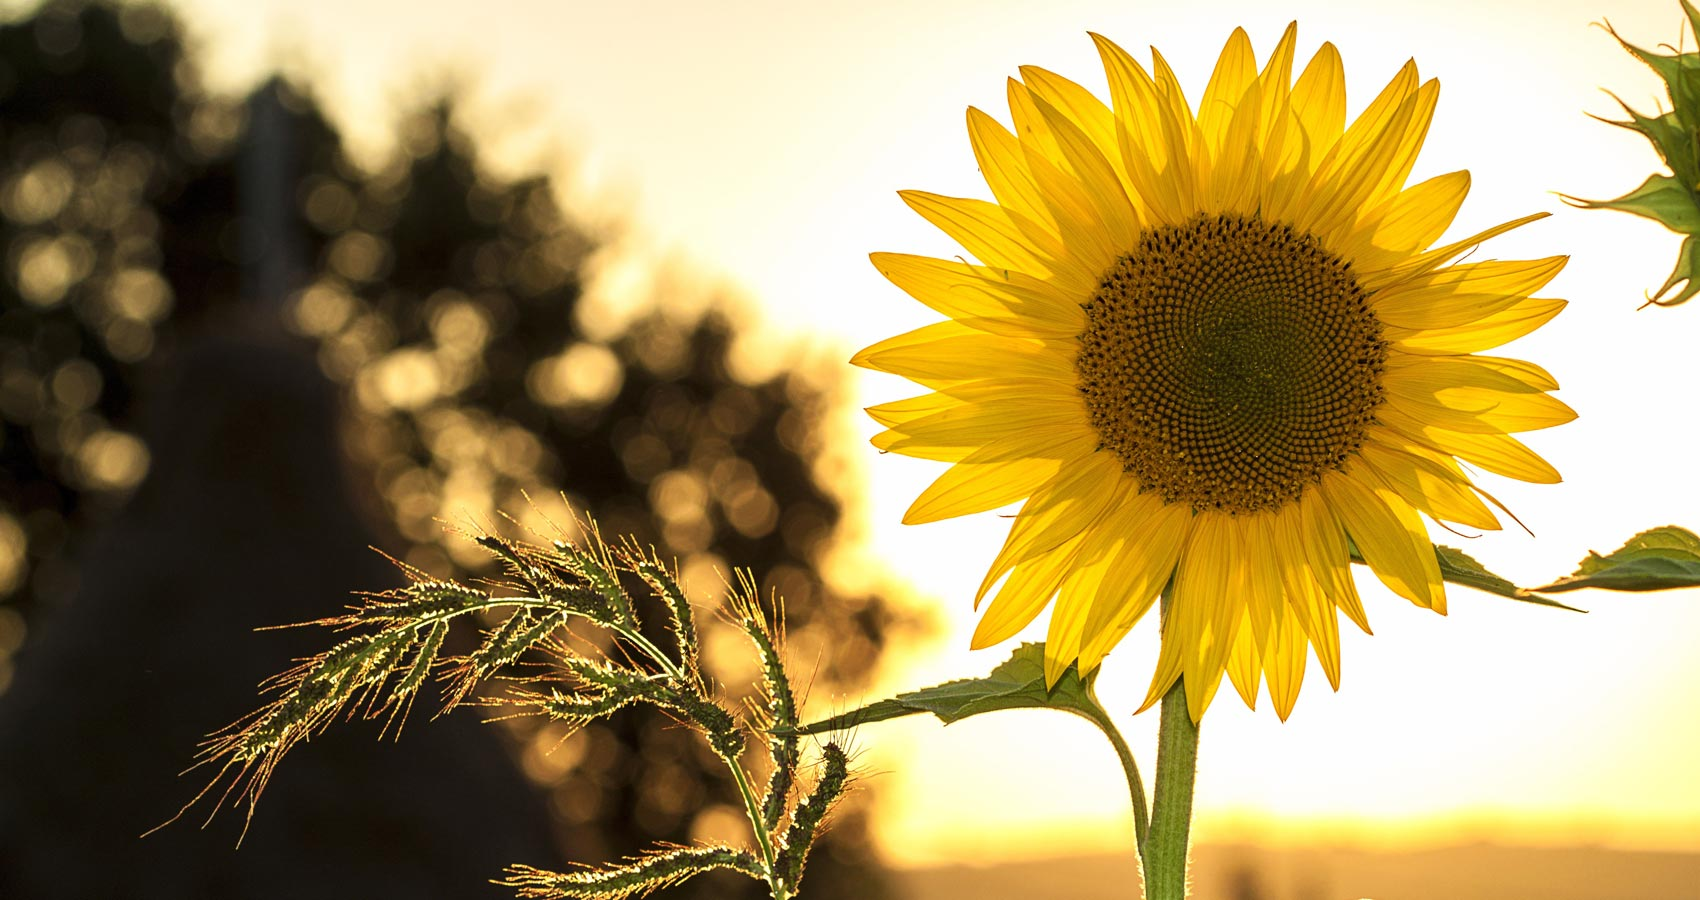 The Sun, The Flower and The Splendor, a poem by Mahroz at Spillwords.com